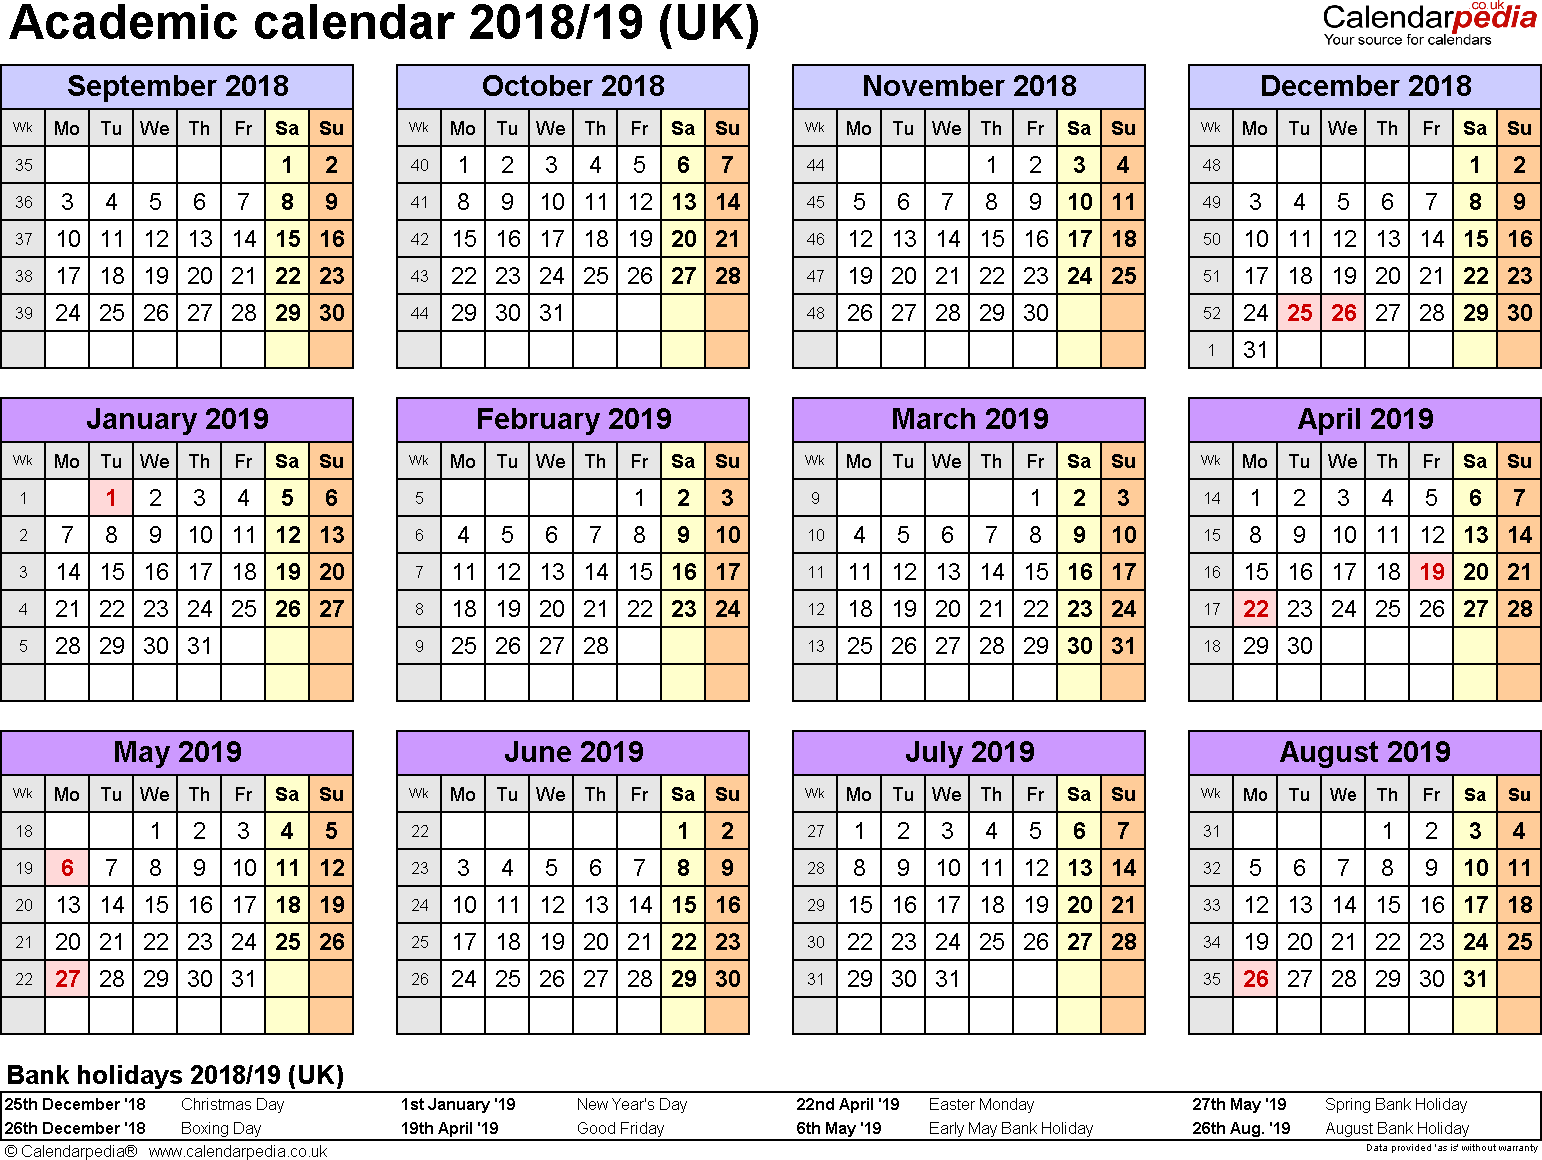 Template 4: Academic year calendars 2018/19 as PDF template, year overview, 1 page